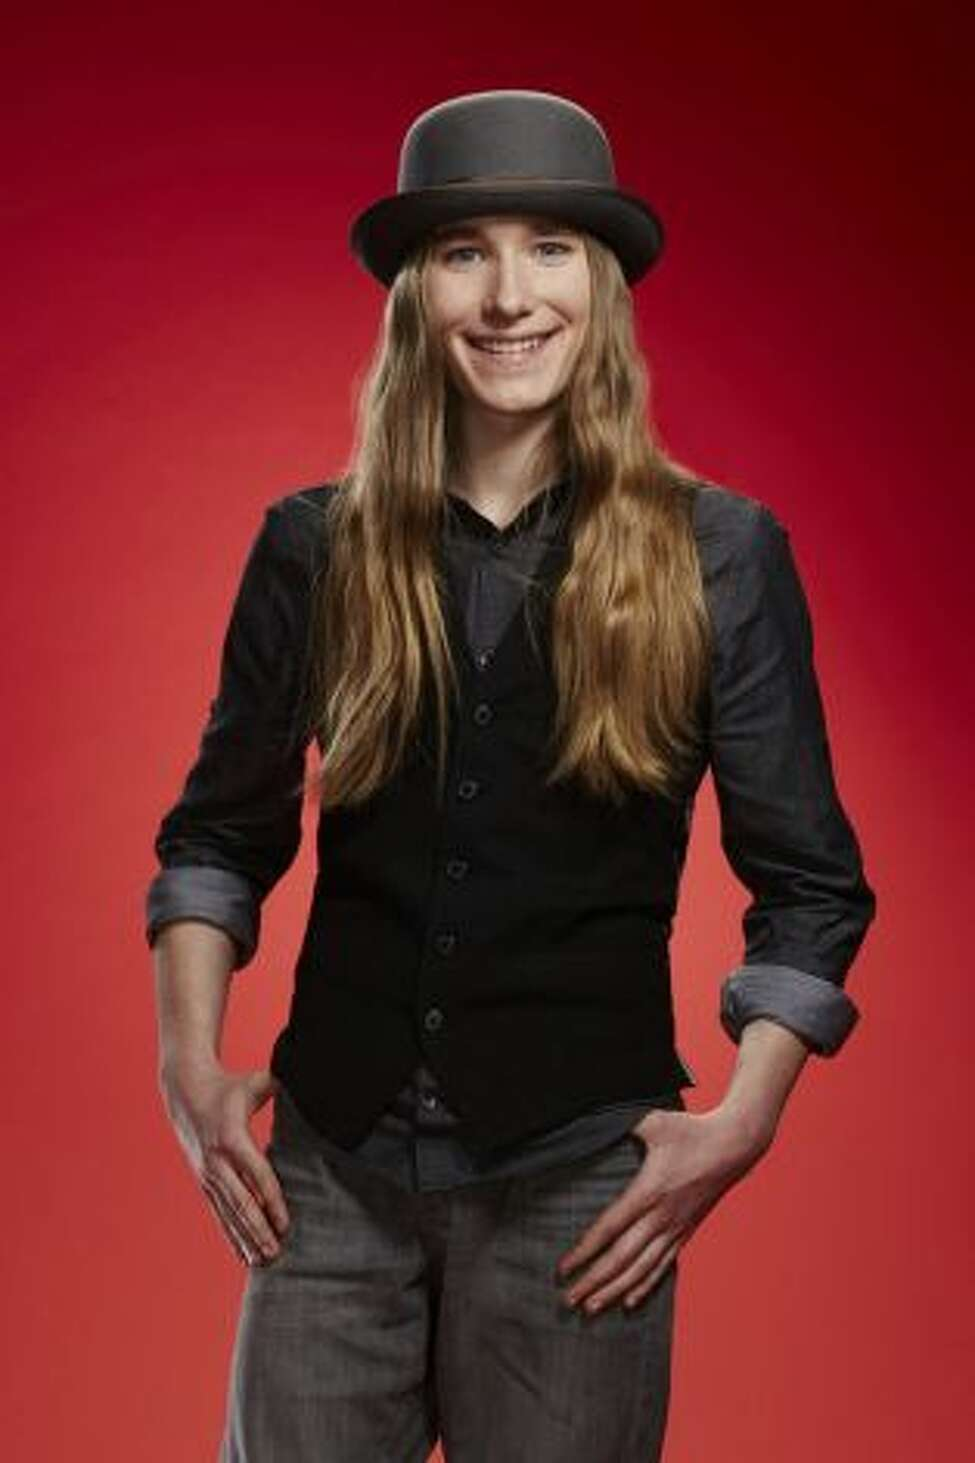 15-year-old Fultonville native Sawyer Fredericks wowed the judges and earned a four-chair turn Monday night on The Voice. (NBC, Paul Drinkwater/NBC)